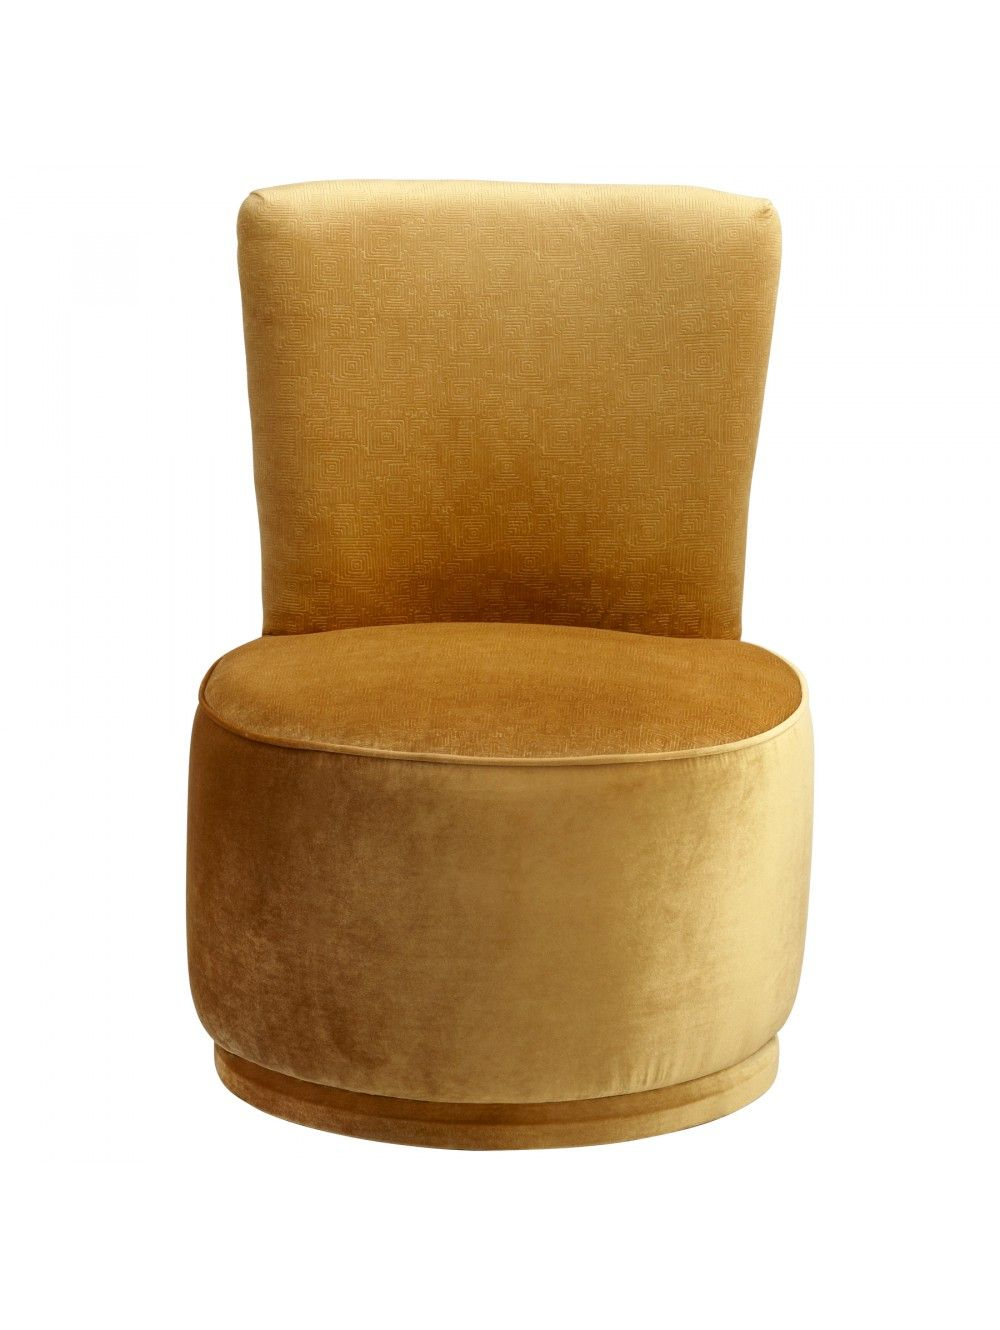 Pinsun Soul Style Interiors On Furniture I Love | Pinterest Pertaining To Twirl Swivel Accent Chairs (Photo 19 of 20)